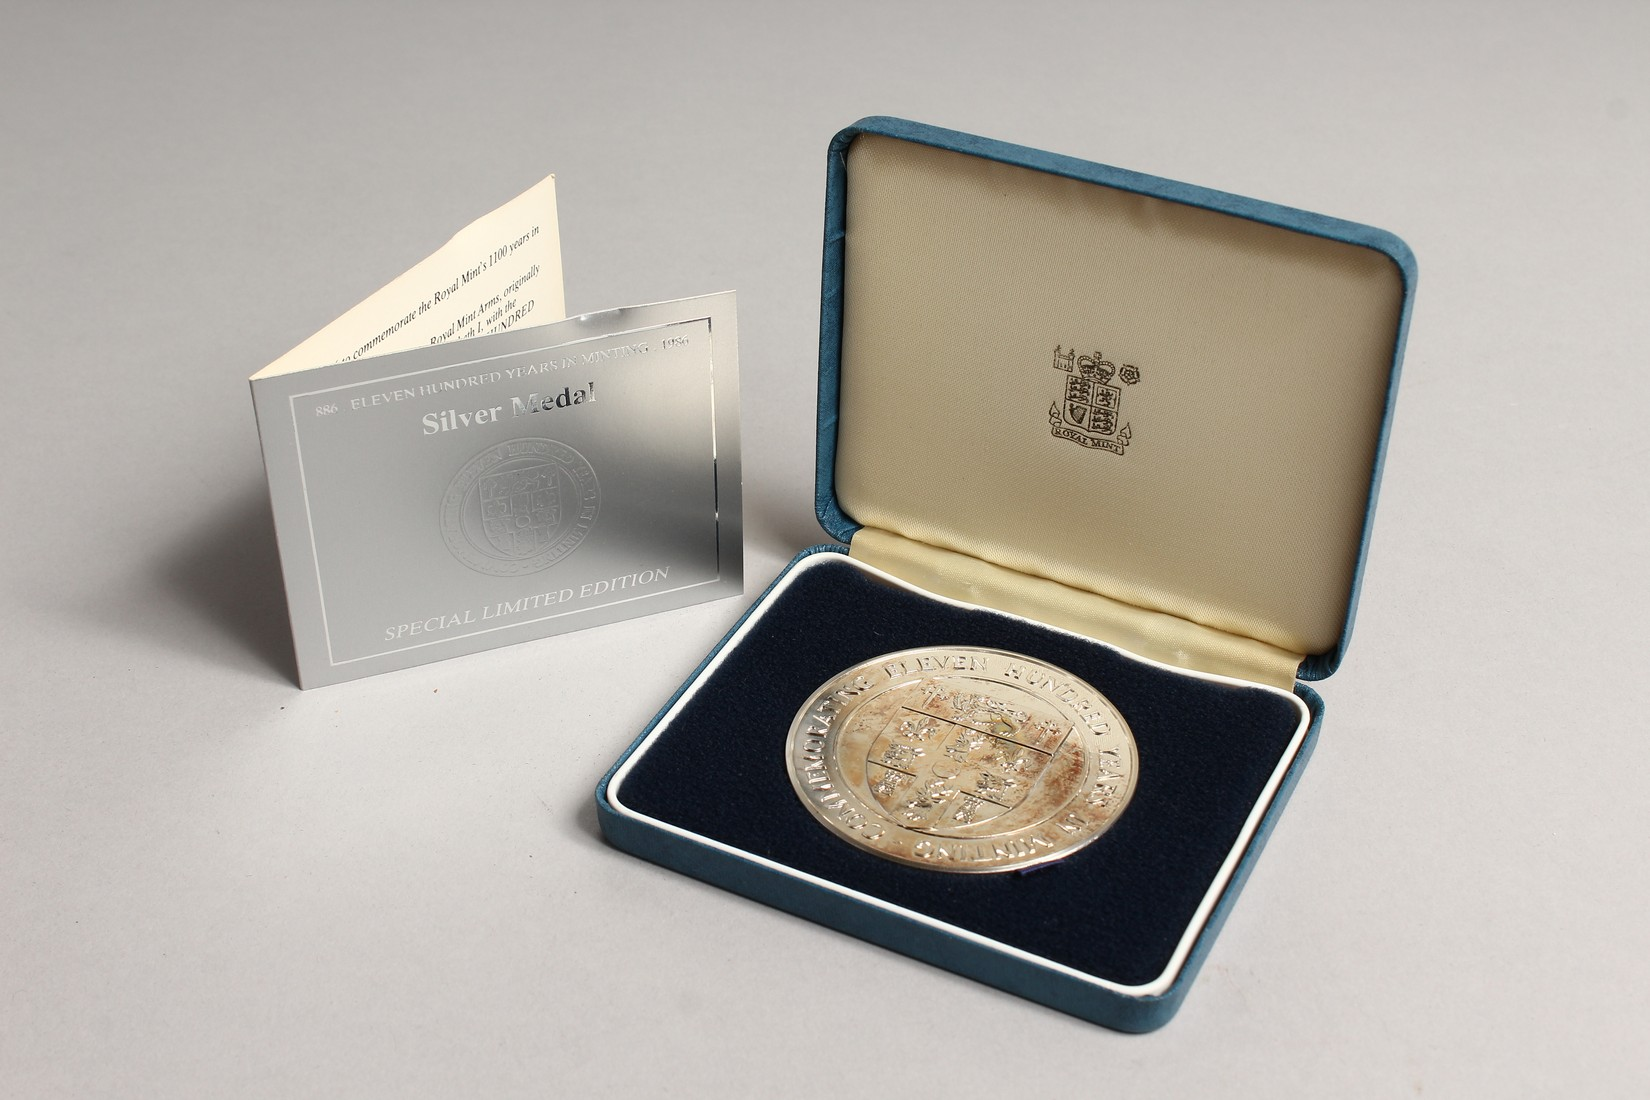 ONE HUNDRED YEARS IN MINTING, SILVER PROOF MEDALLION in a box issued by the Royal Mint, no.886 - Image 3 of 3